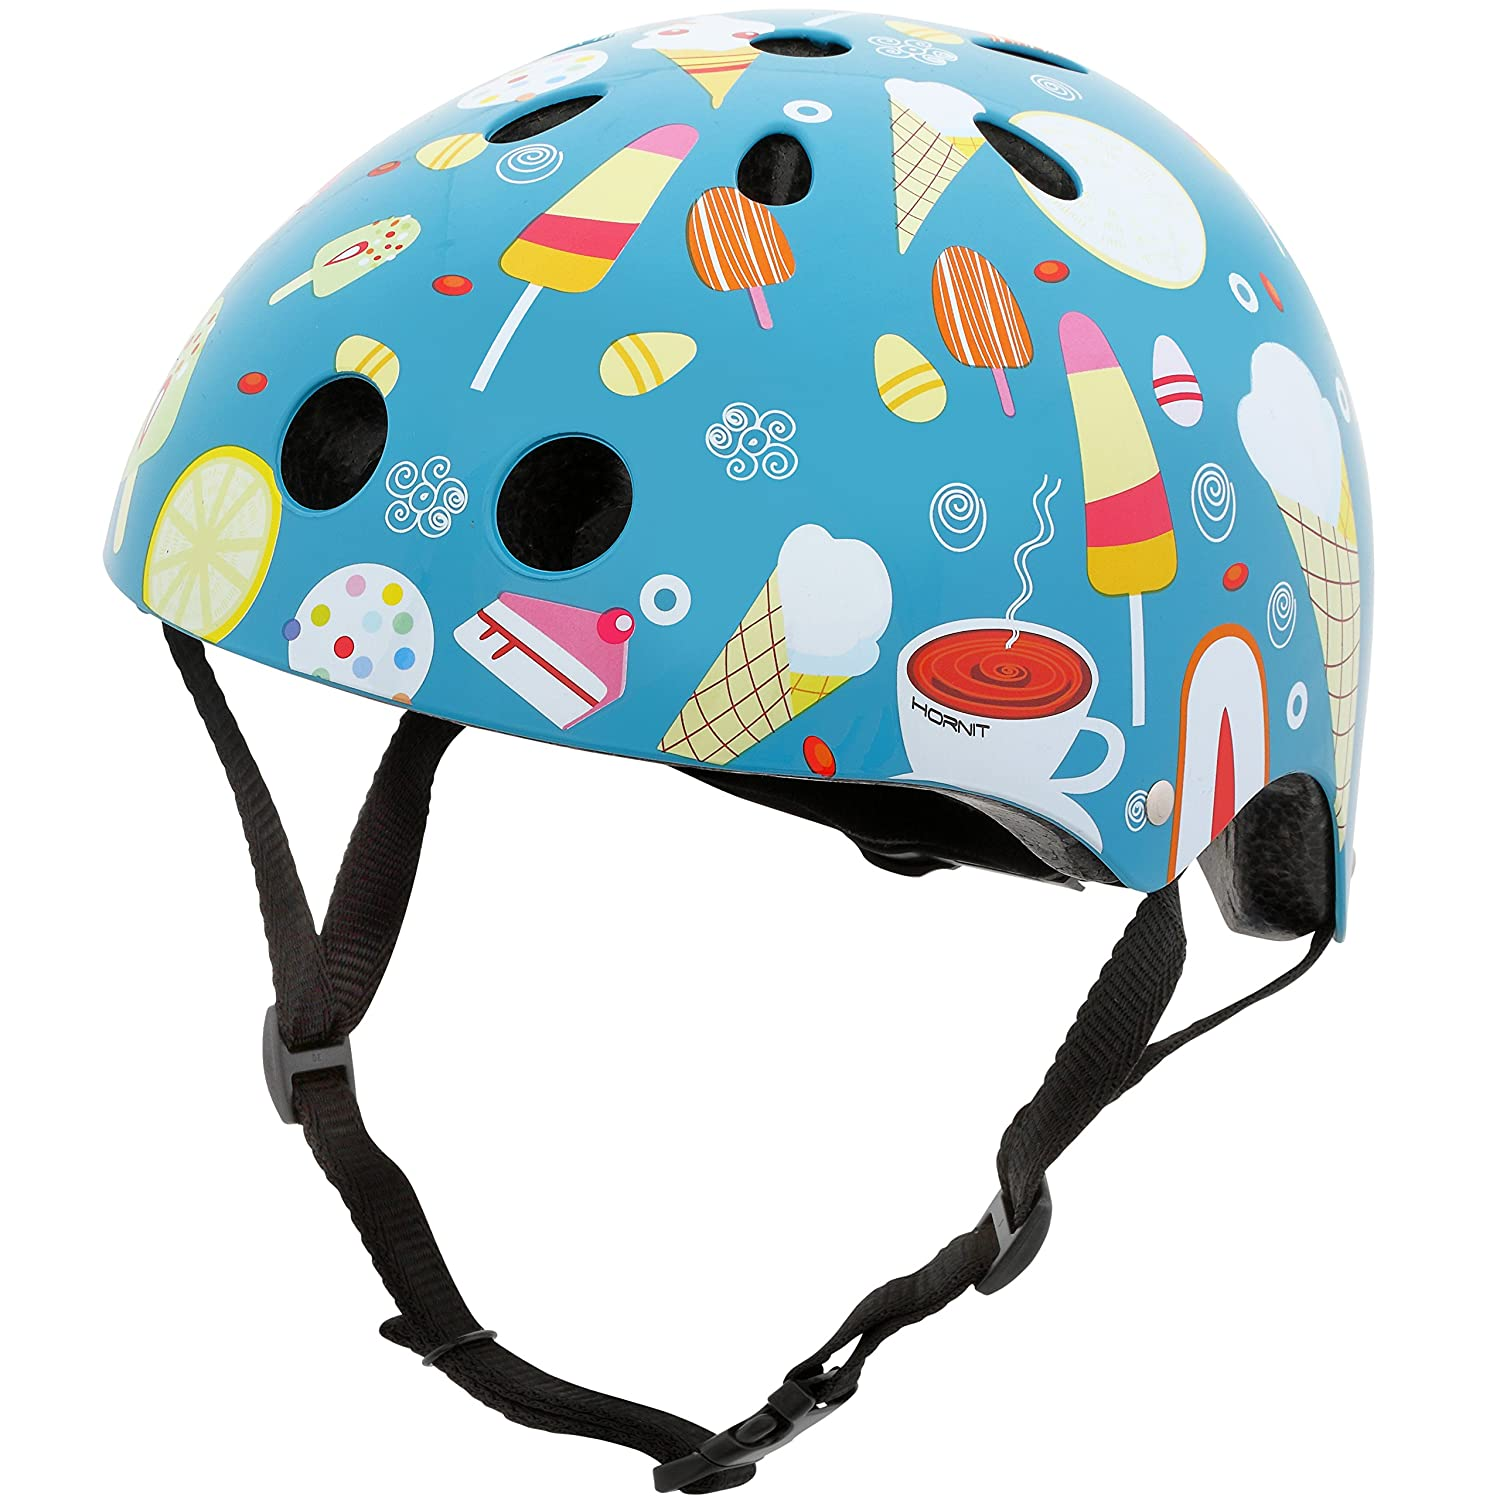 Hornit Mini Lids Multi-Sport Helmet with Rear Light CPSC Certified for Biking, Skateboarding, and Skating Fully Adjustable for Comfort and Safety